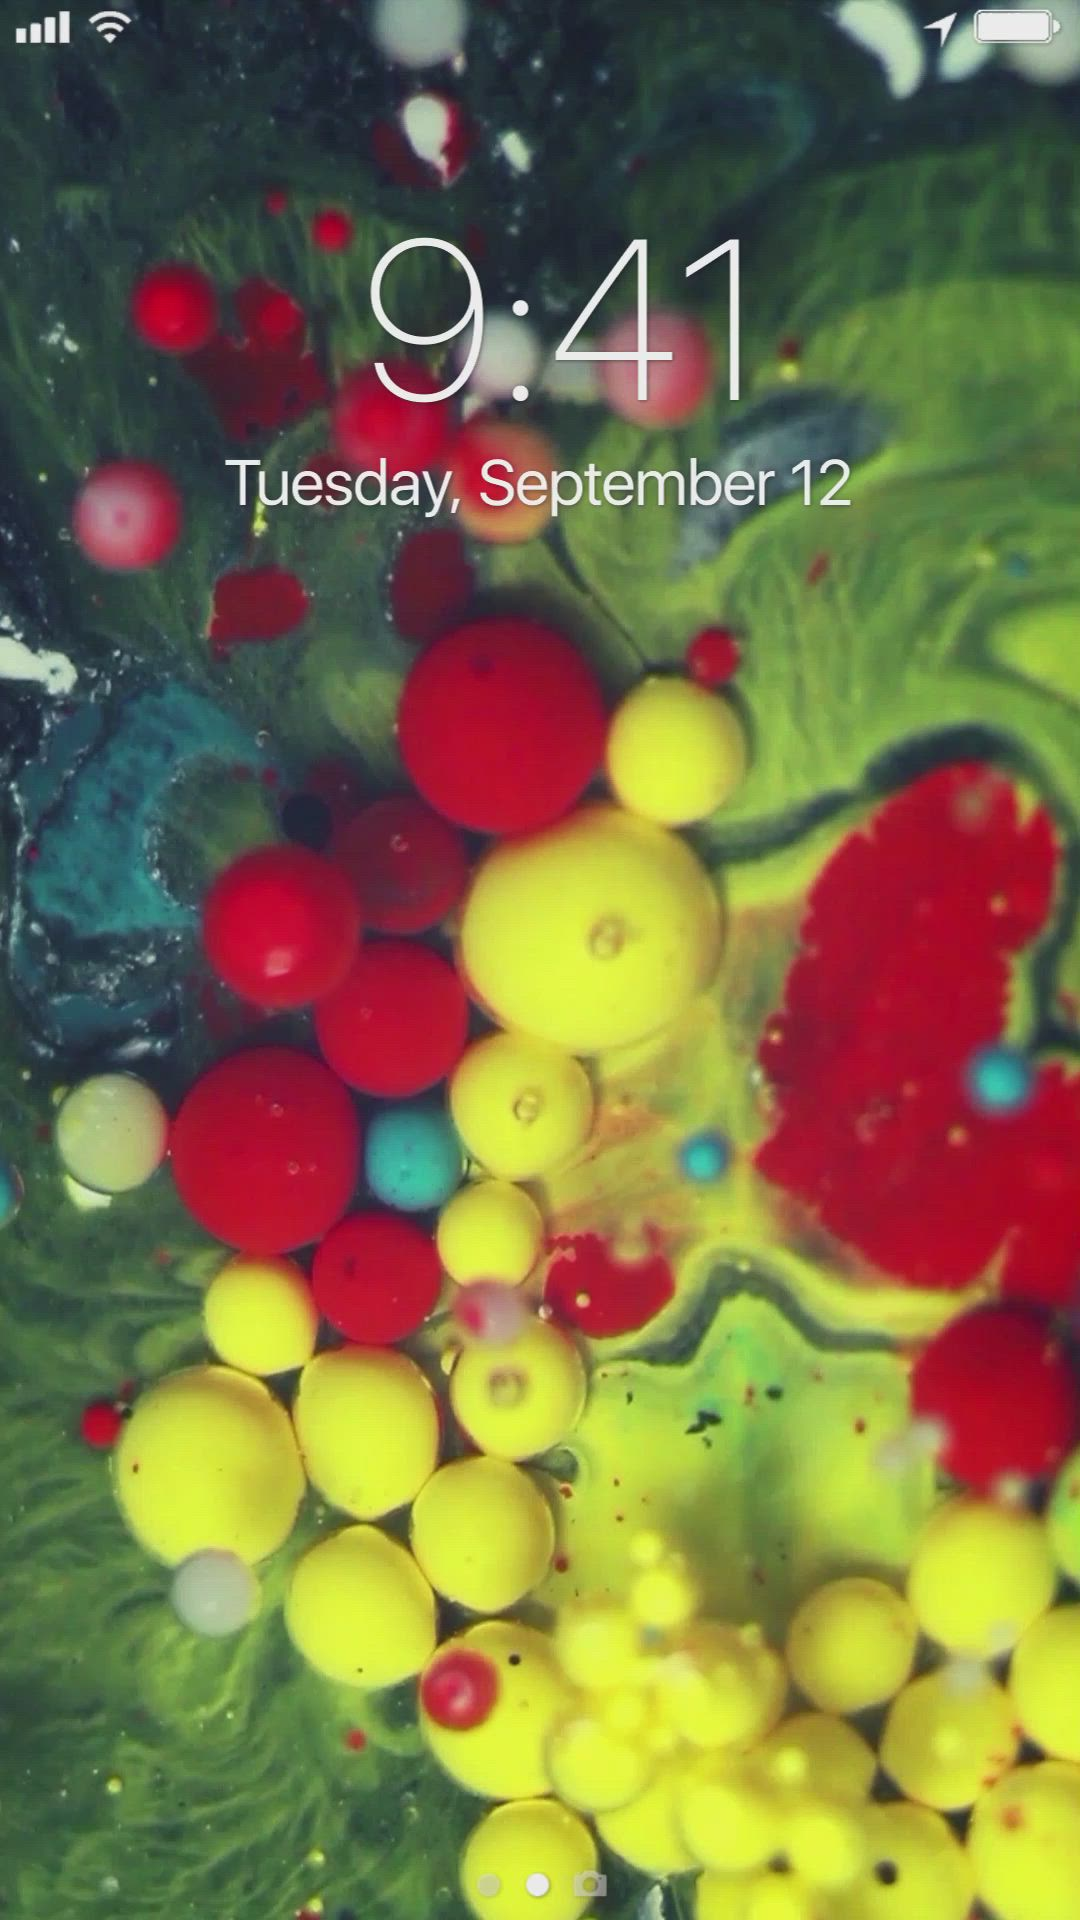 Awesome Live Wallpapers Video Iphone Wallpaper Landscape Wallpaper App Live Wallpaper Iphone